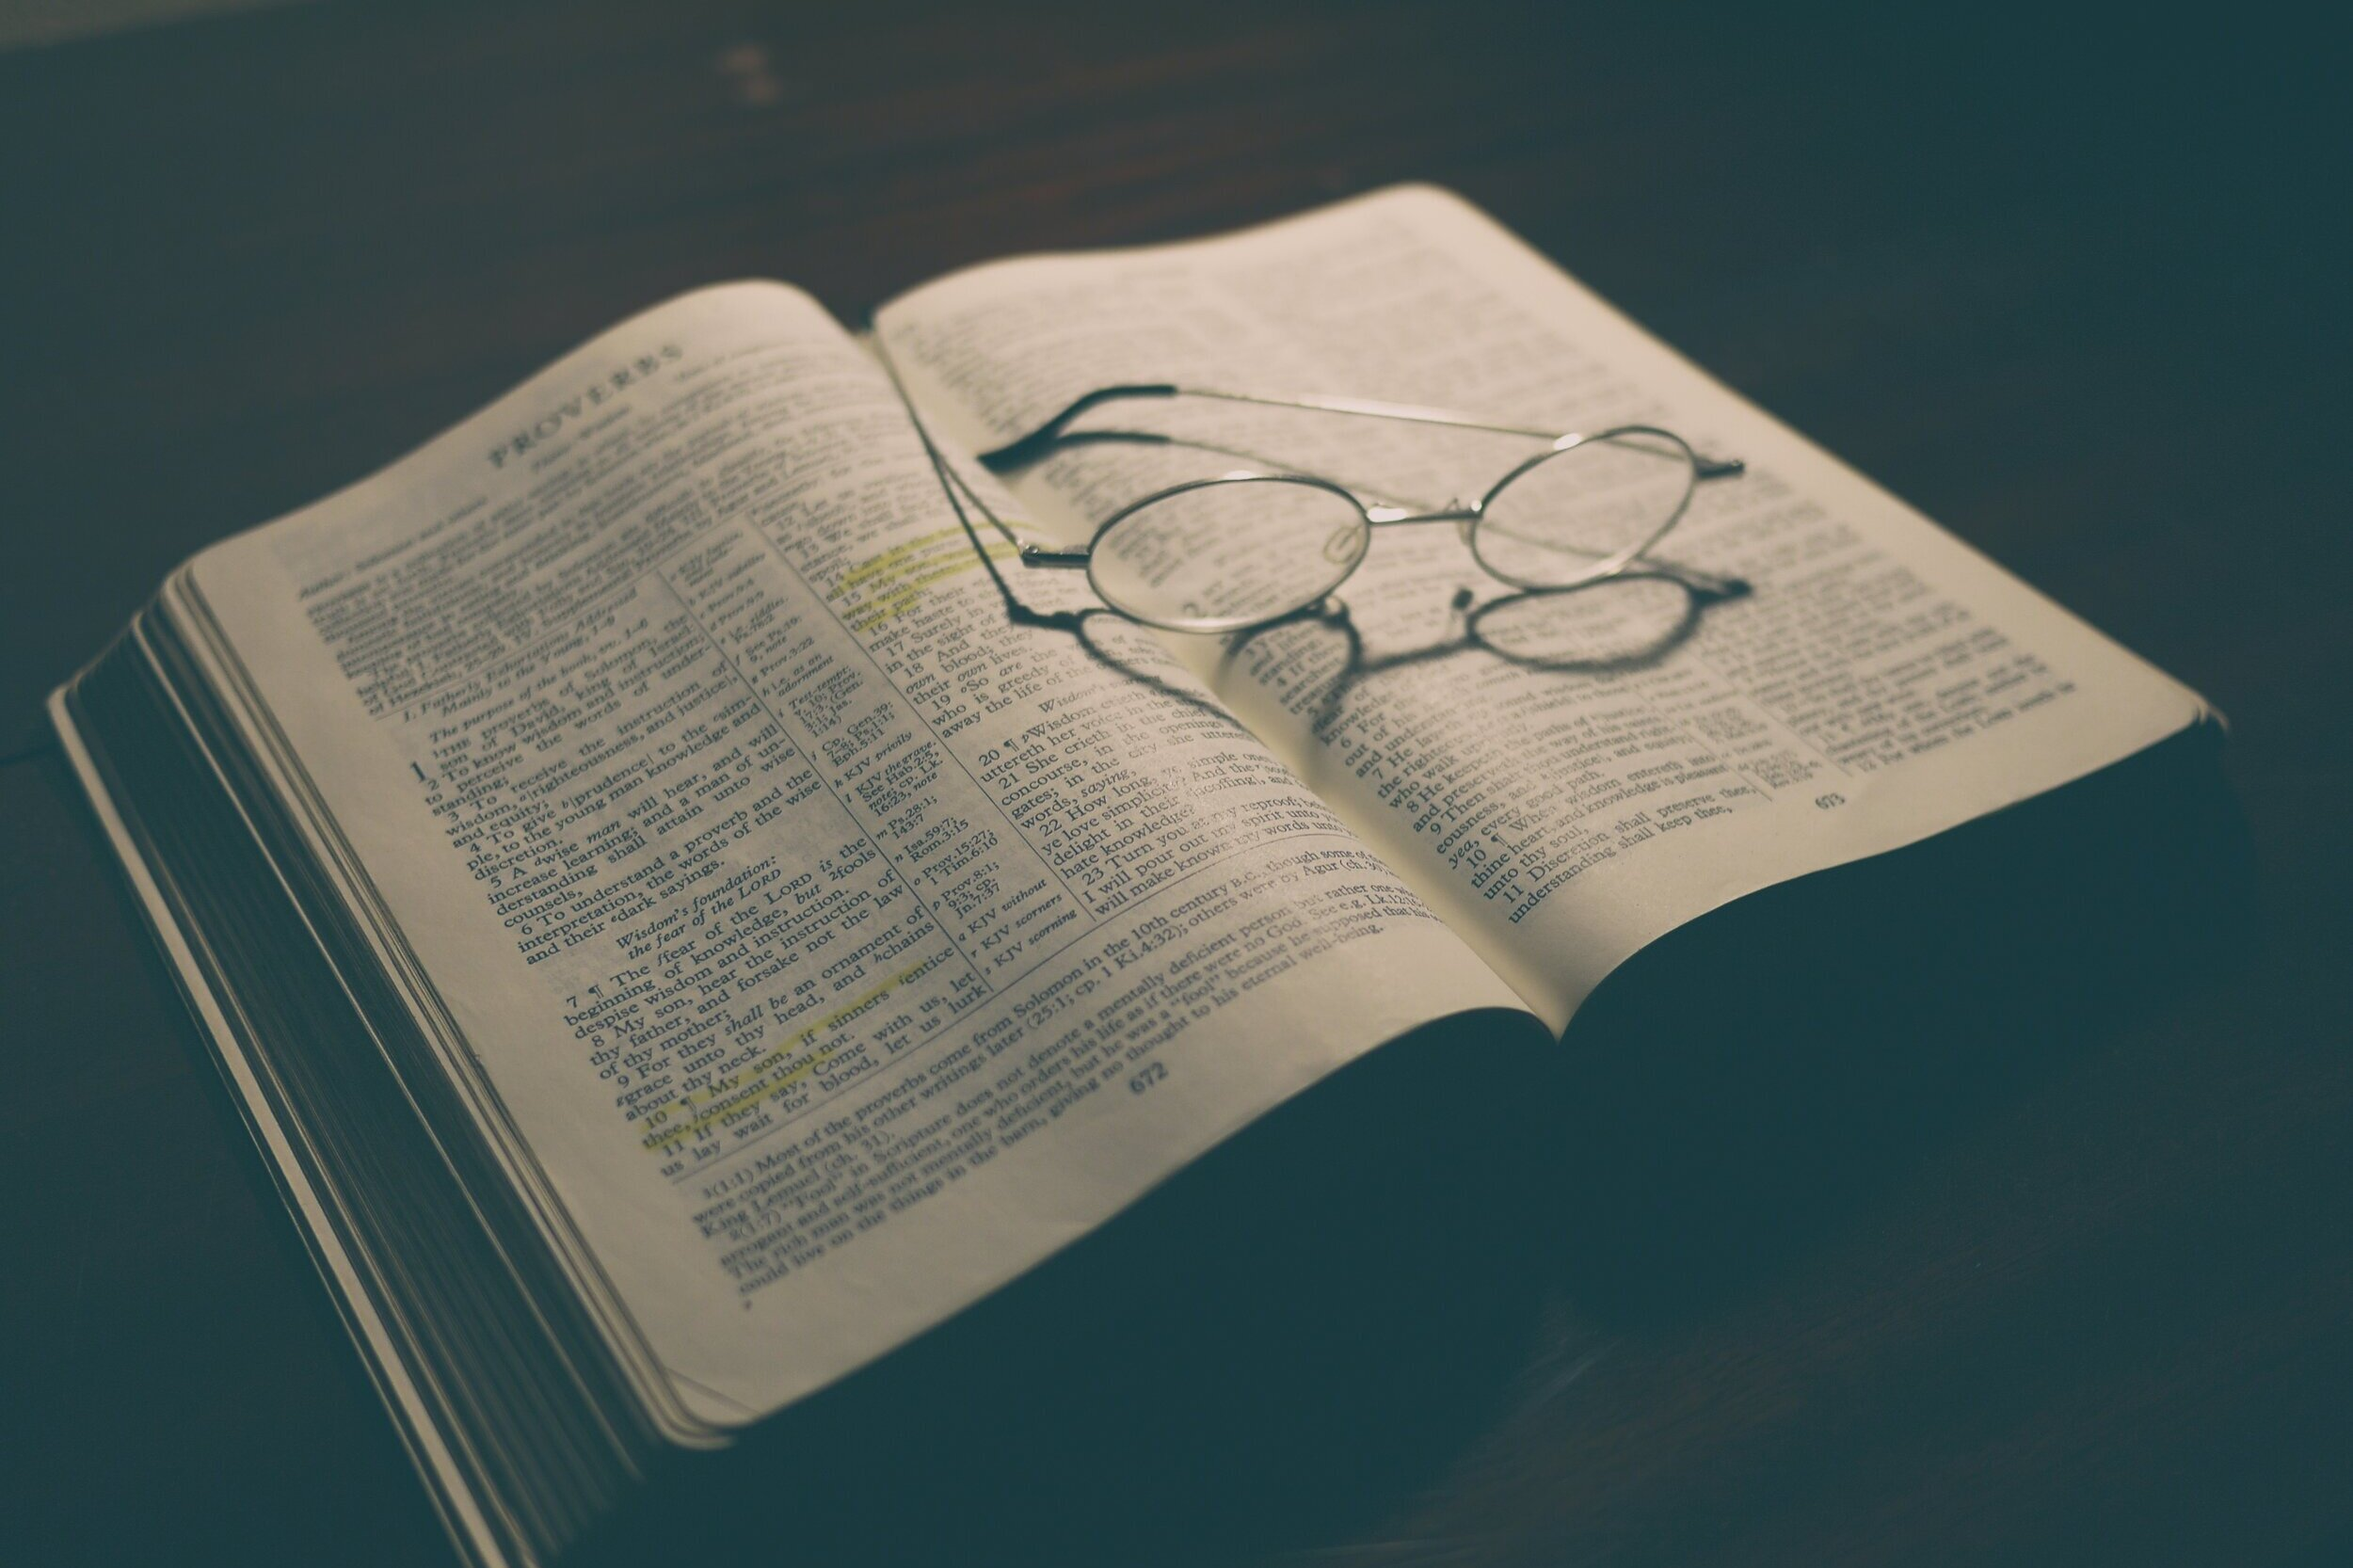 Themes from Proverbs